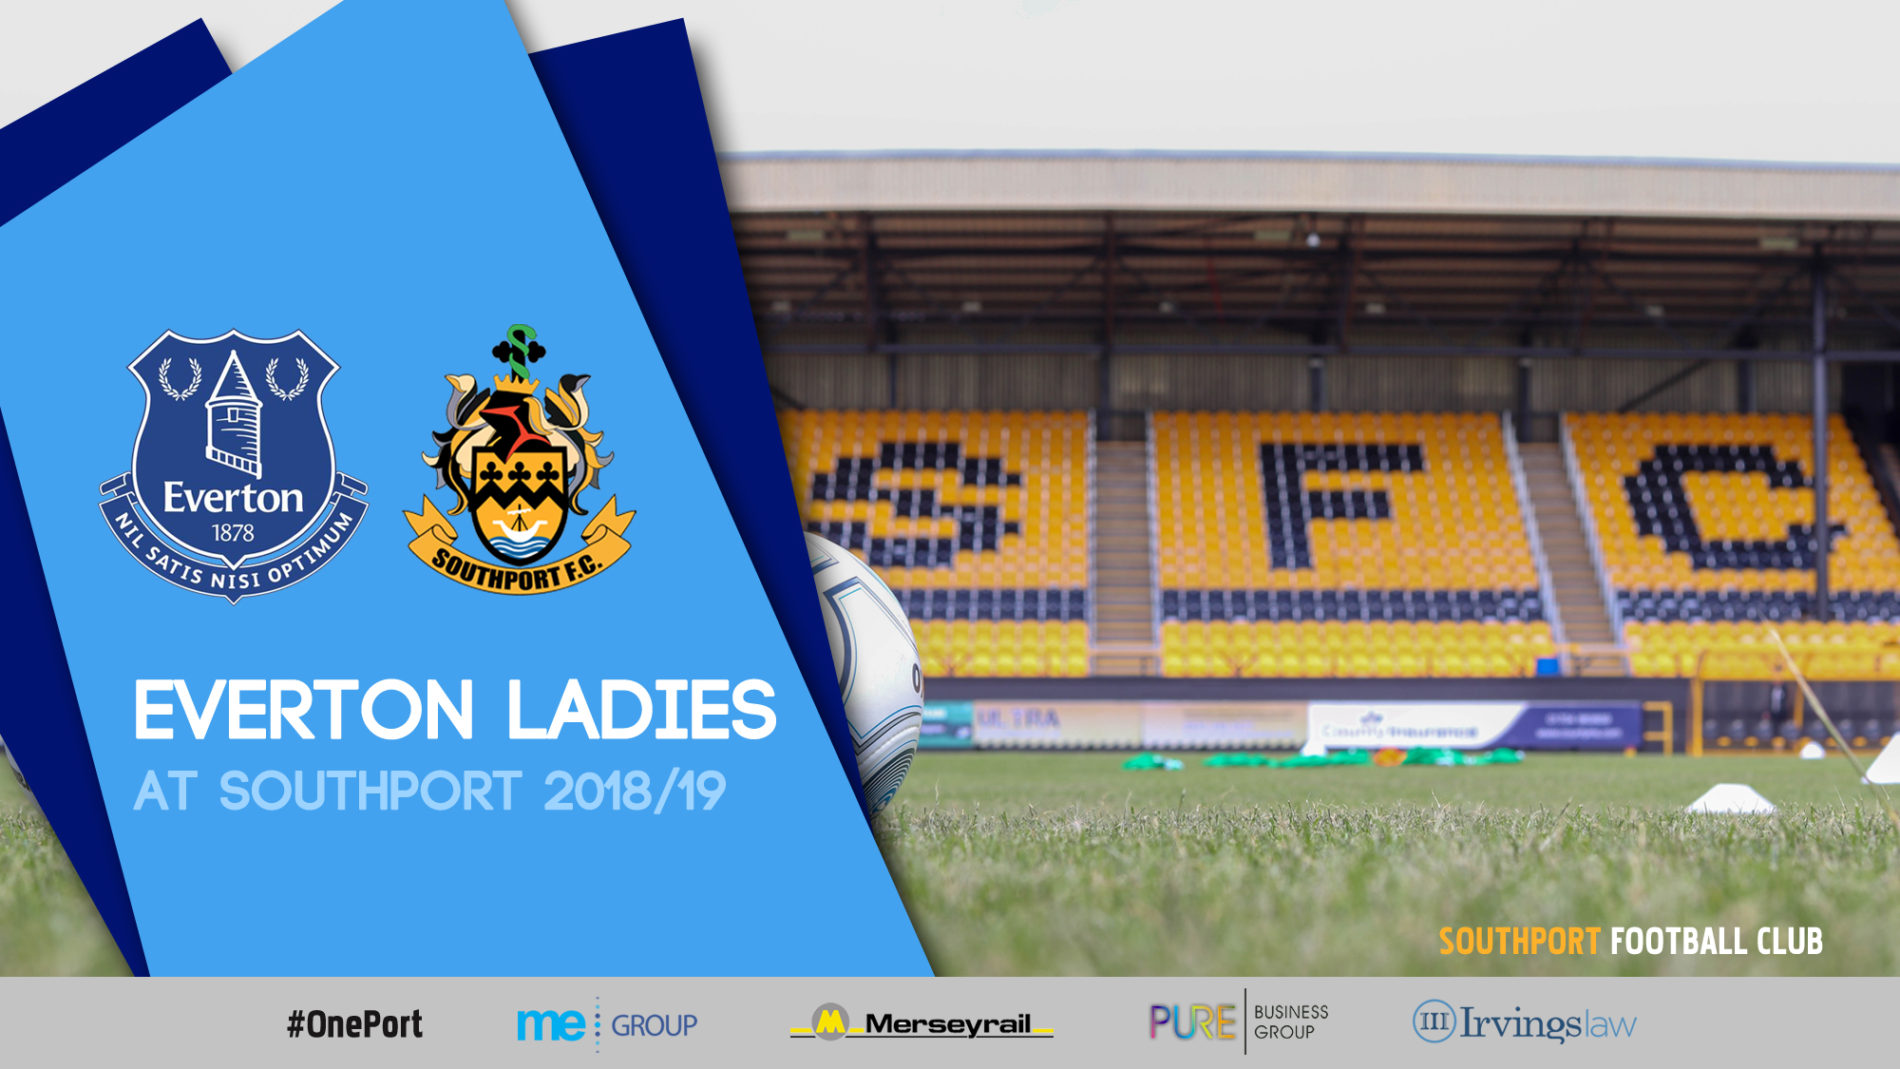 ANNOUNCEMENT | Everton Ladies Are In Town!